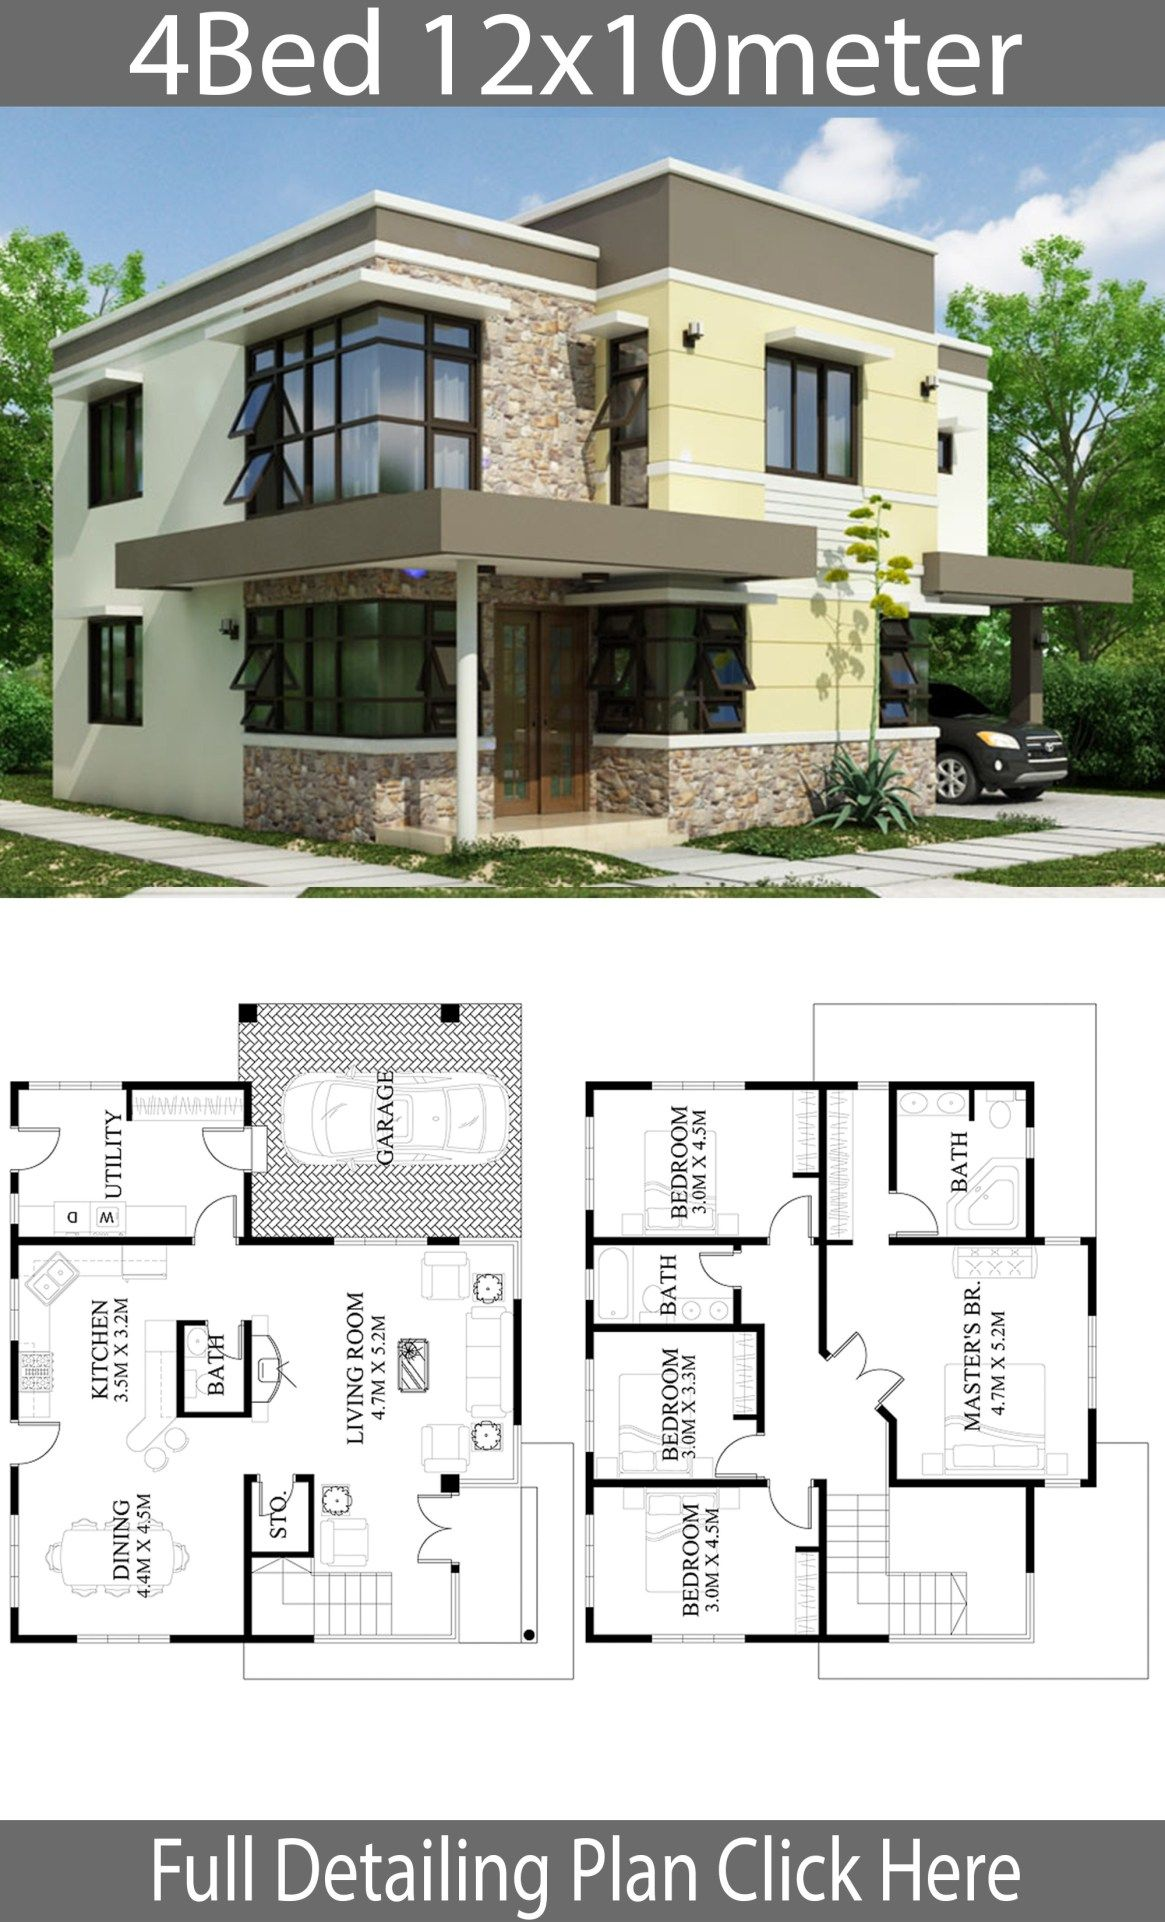 Home Design Plan 12x10m With 4 Bedrooms Home Design With Plansearch Home Design Floor Plans Model House Plan Modern House Plans